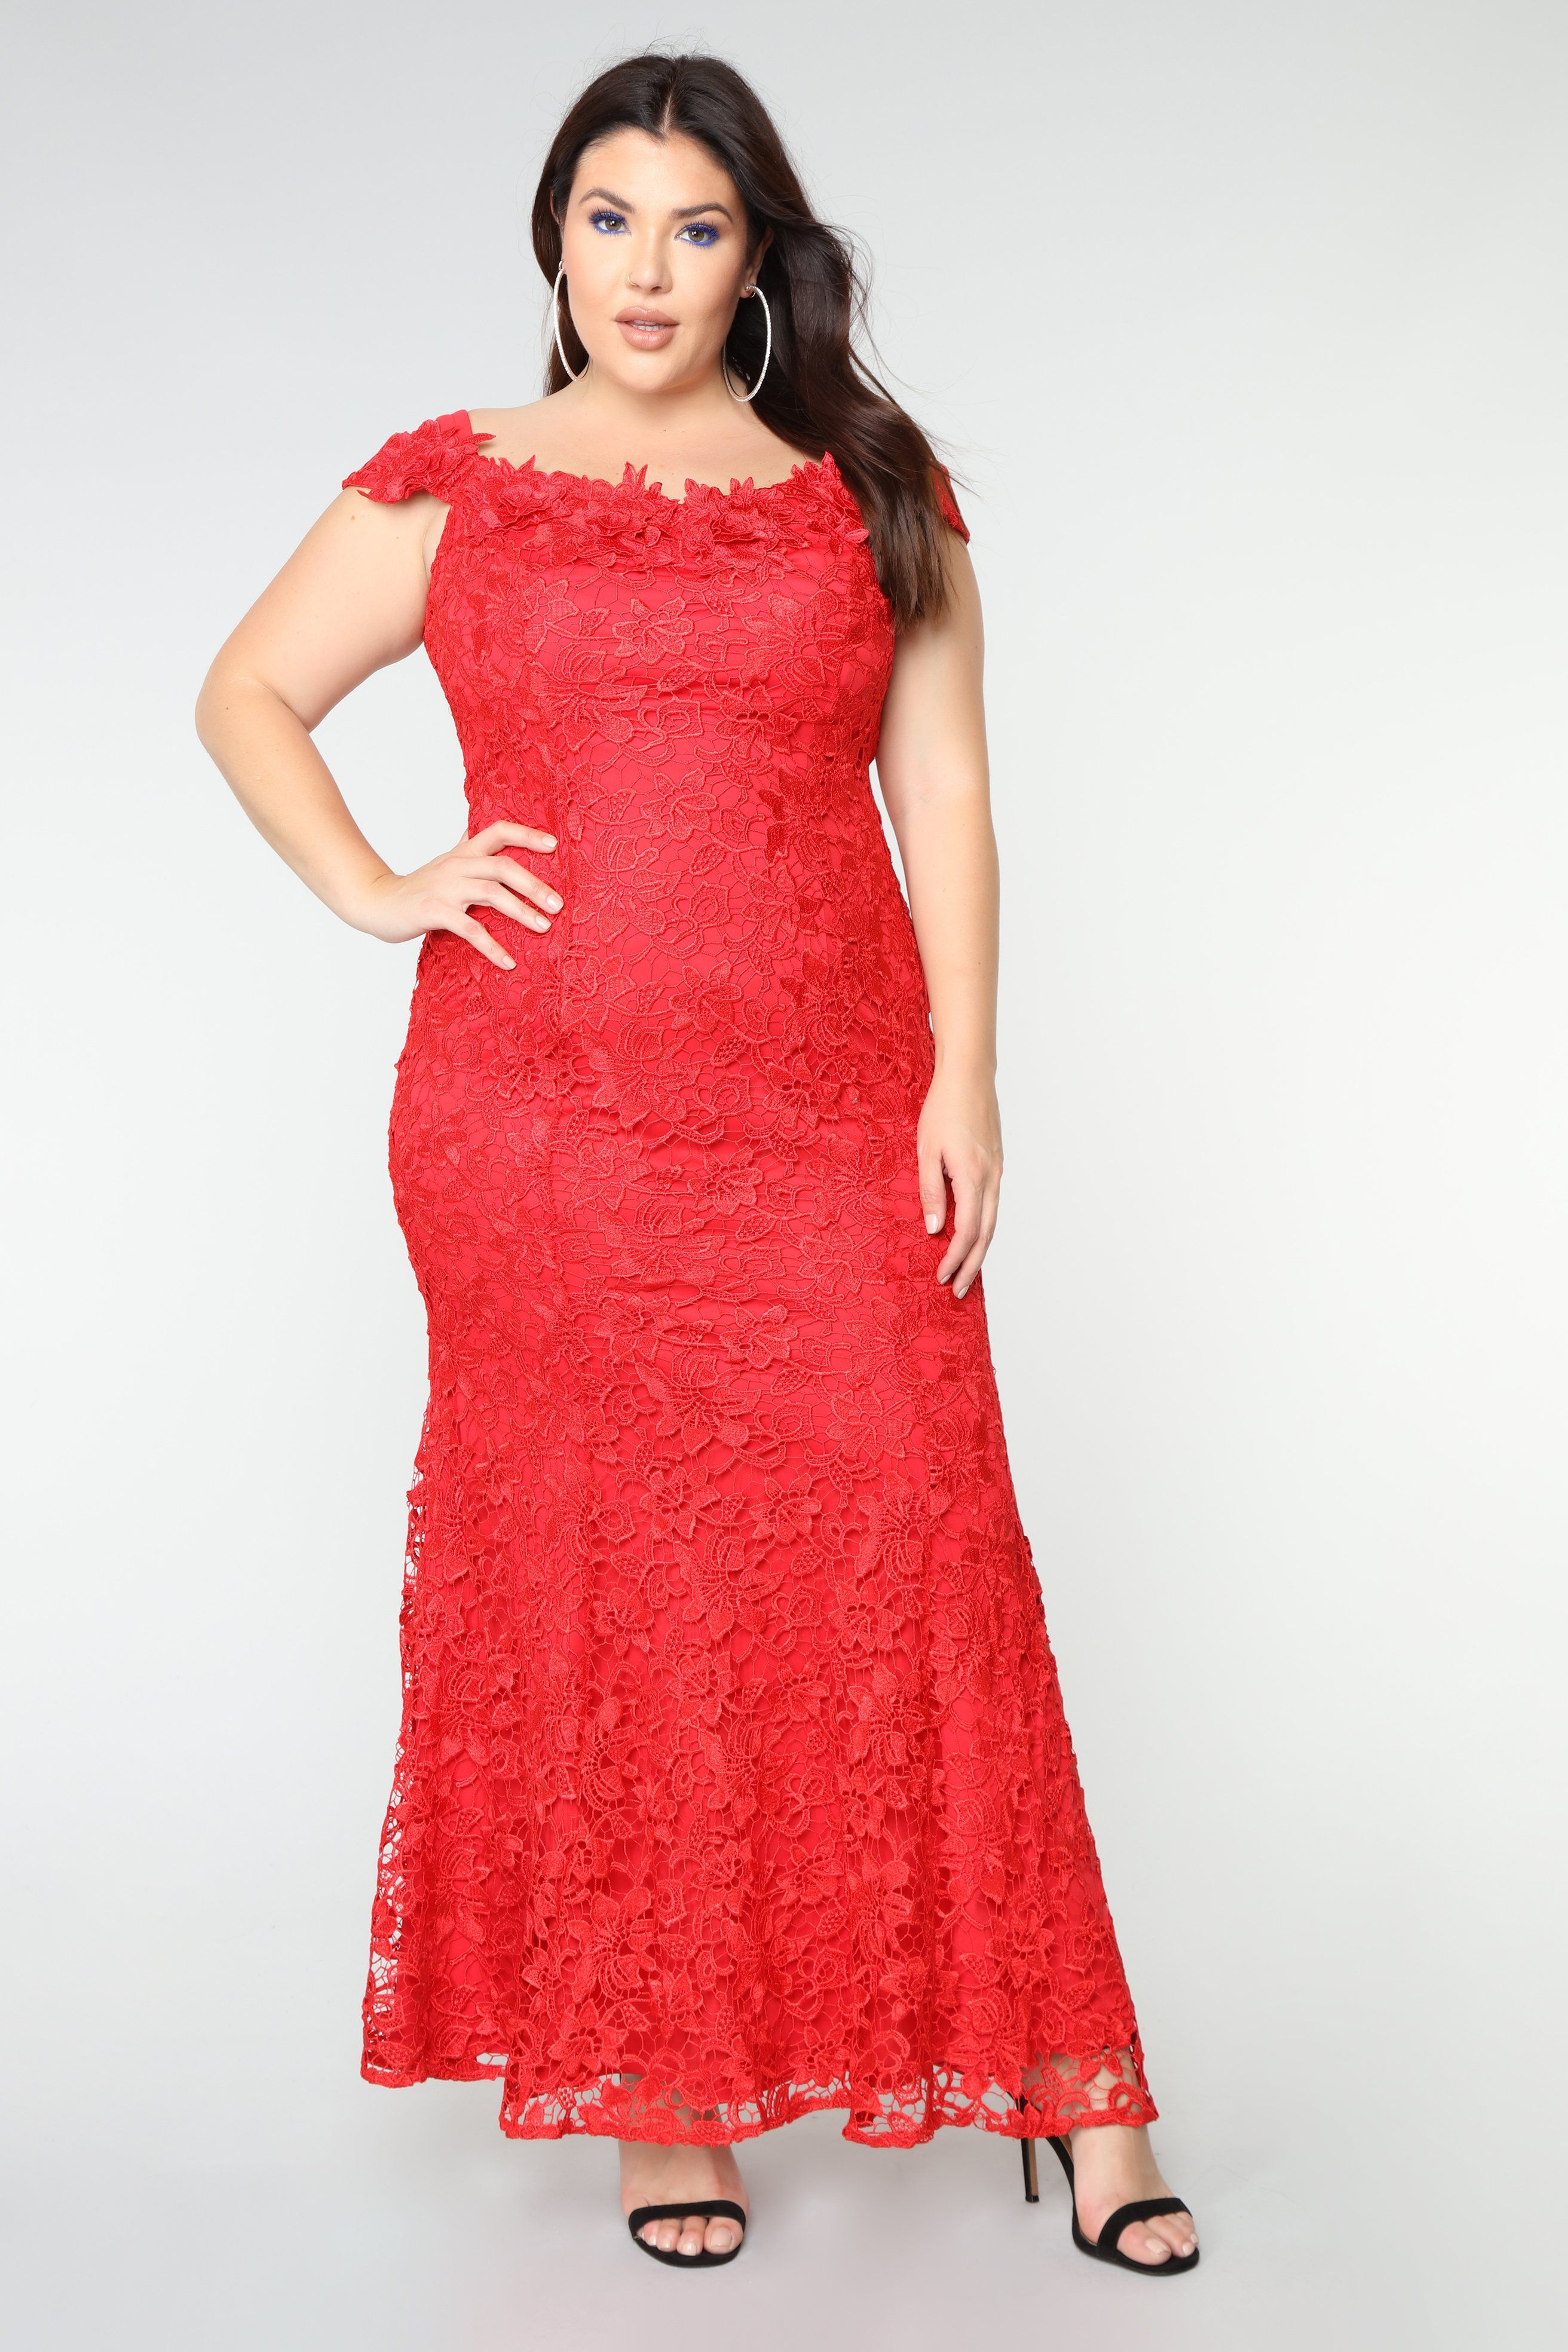 Superior Lace Dress Red Red lace dress, Dresses, Red dress